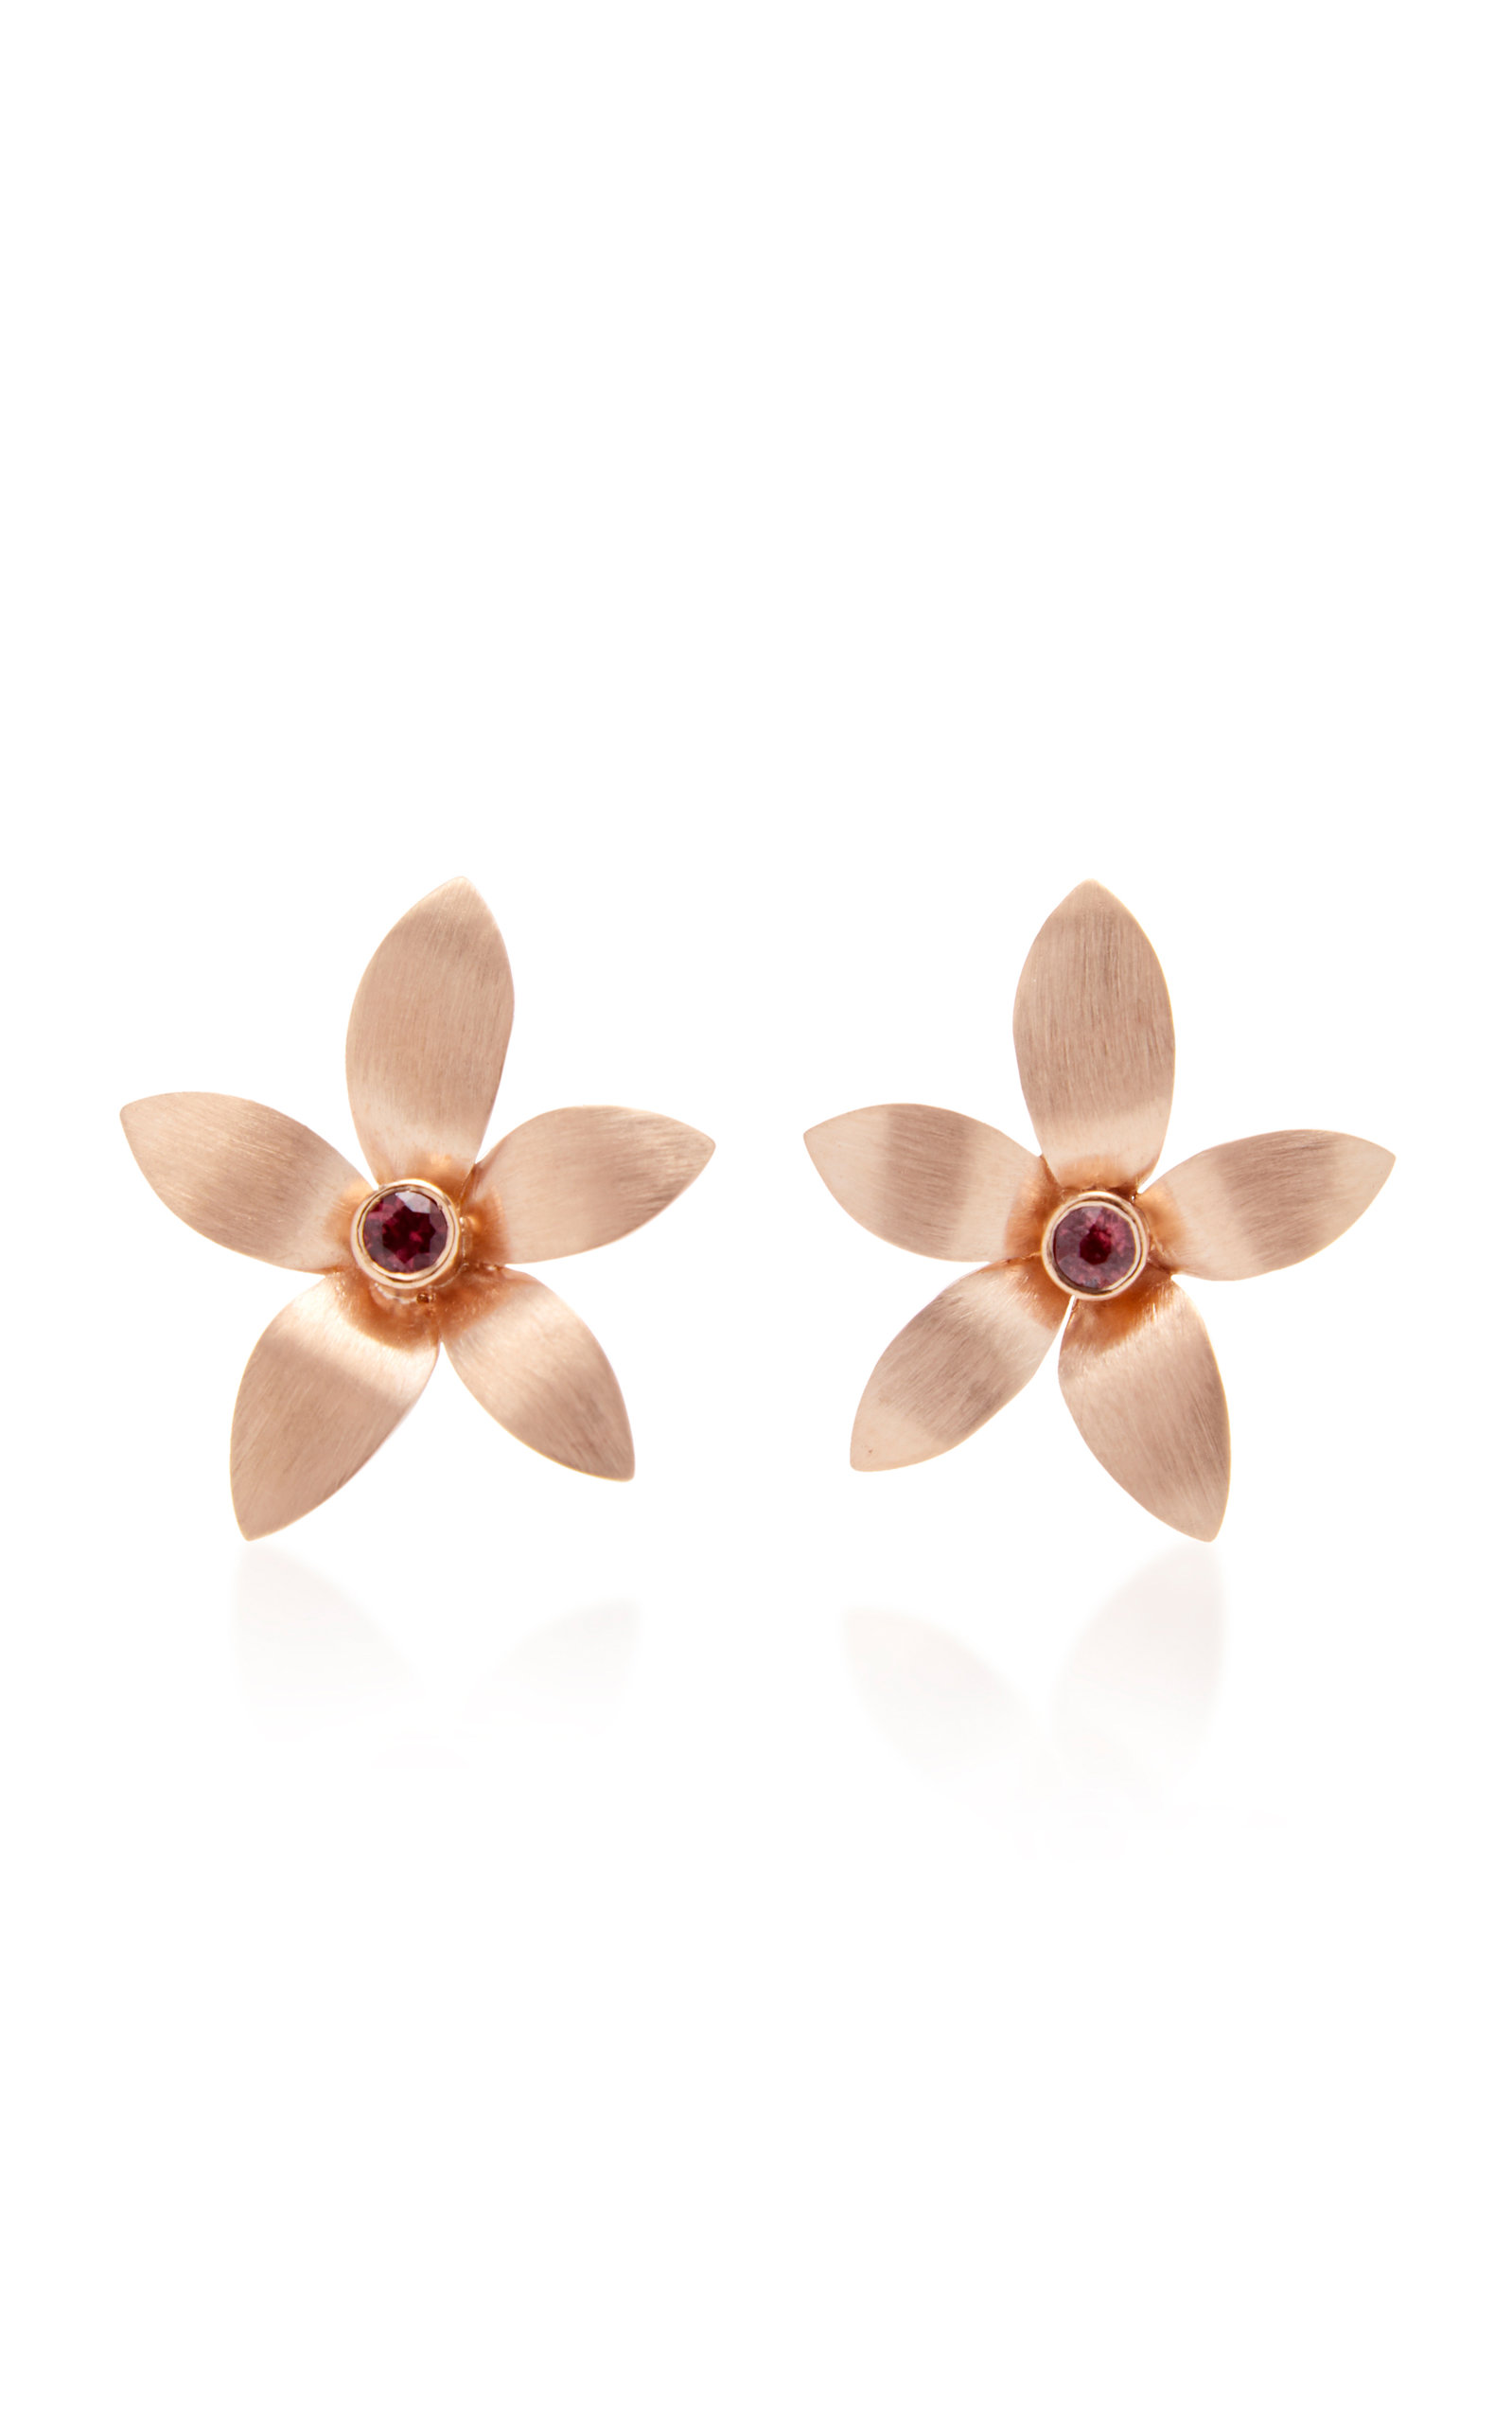 DONNA HOURANI 18K GOLD TOURMALINE ORCHID EARRINGS